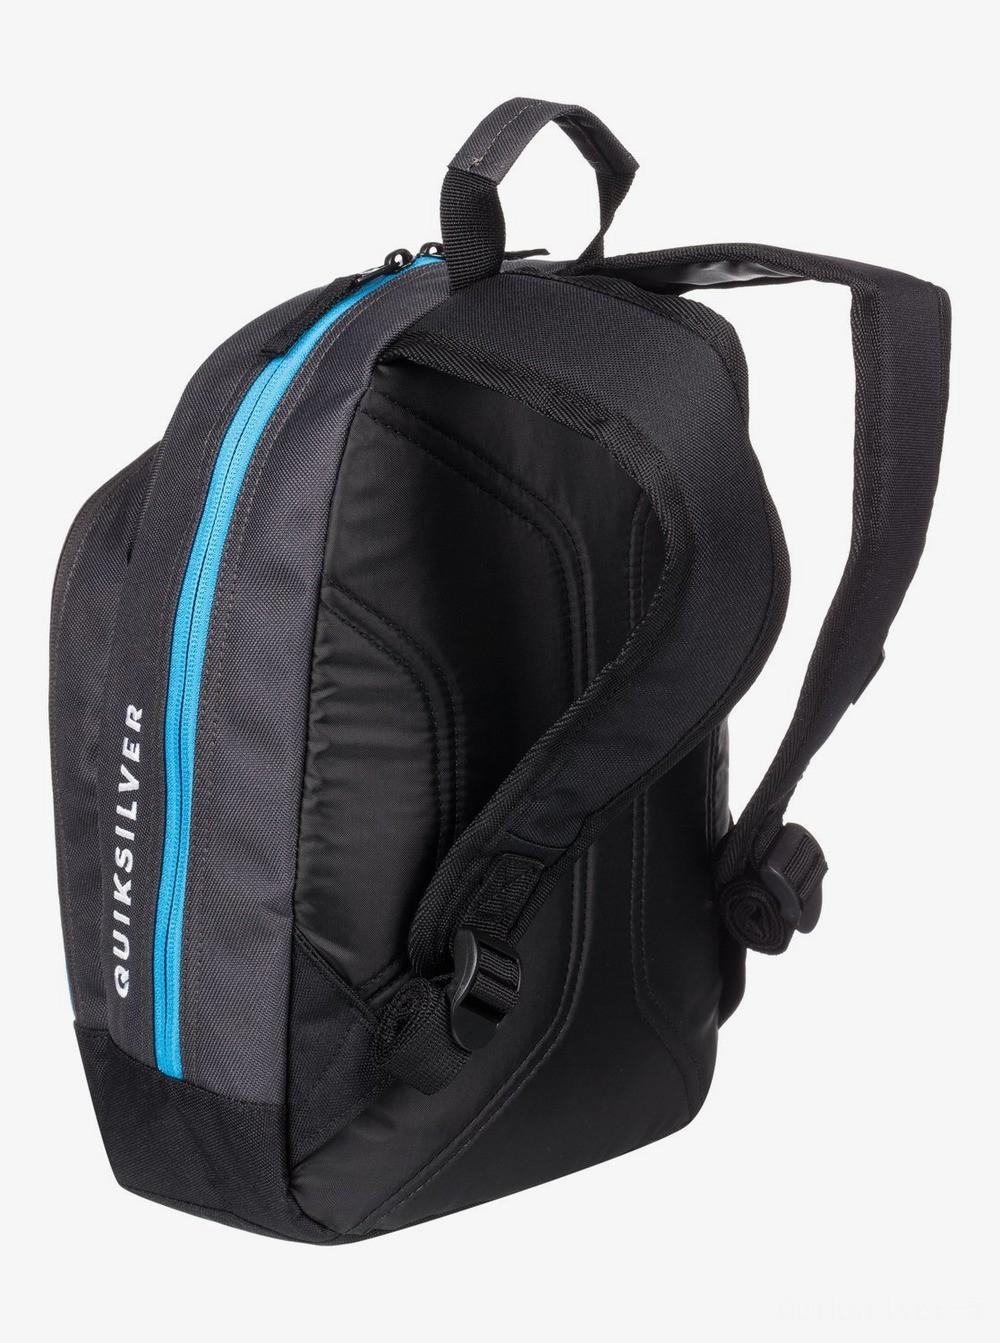 best price boy's 2-7 chompine 12l small backpack - blithe limited sale last chance